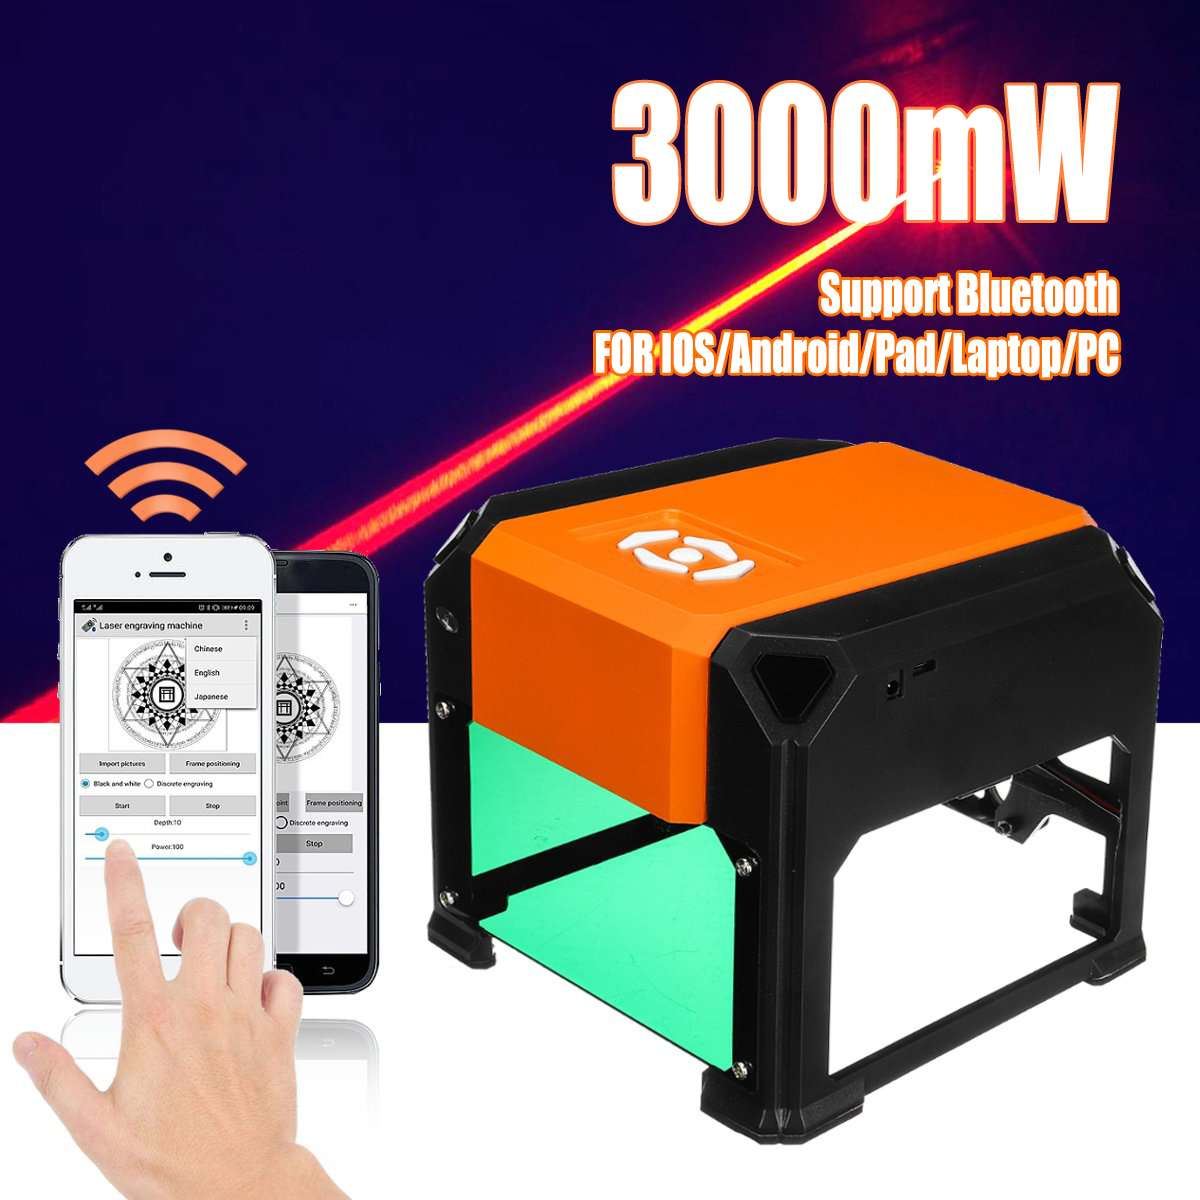 3000mW USB Bluetooth Desktop Laser Engraving Machine DIY Logo Mark Printer Cutter CNC Laser Carving Machine AC 110-220V